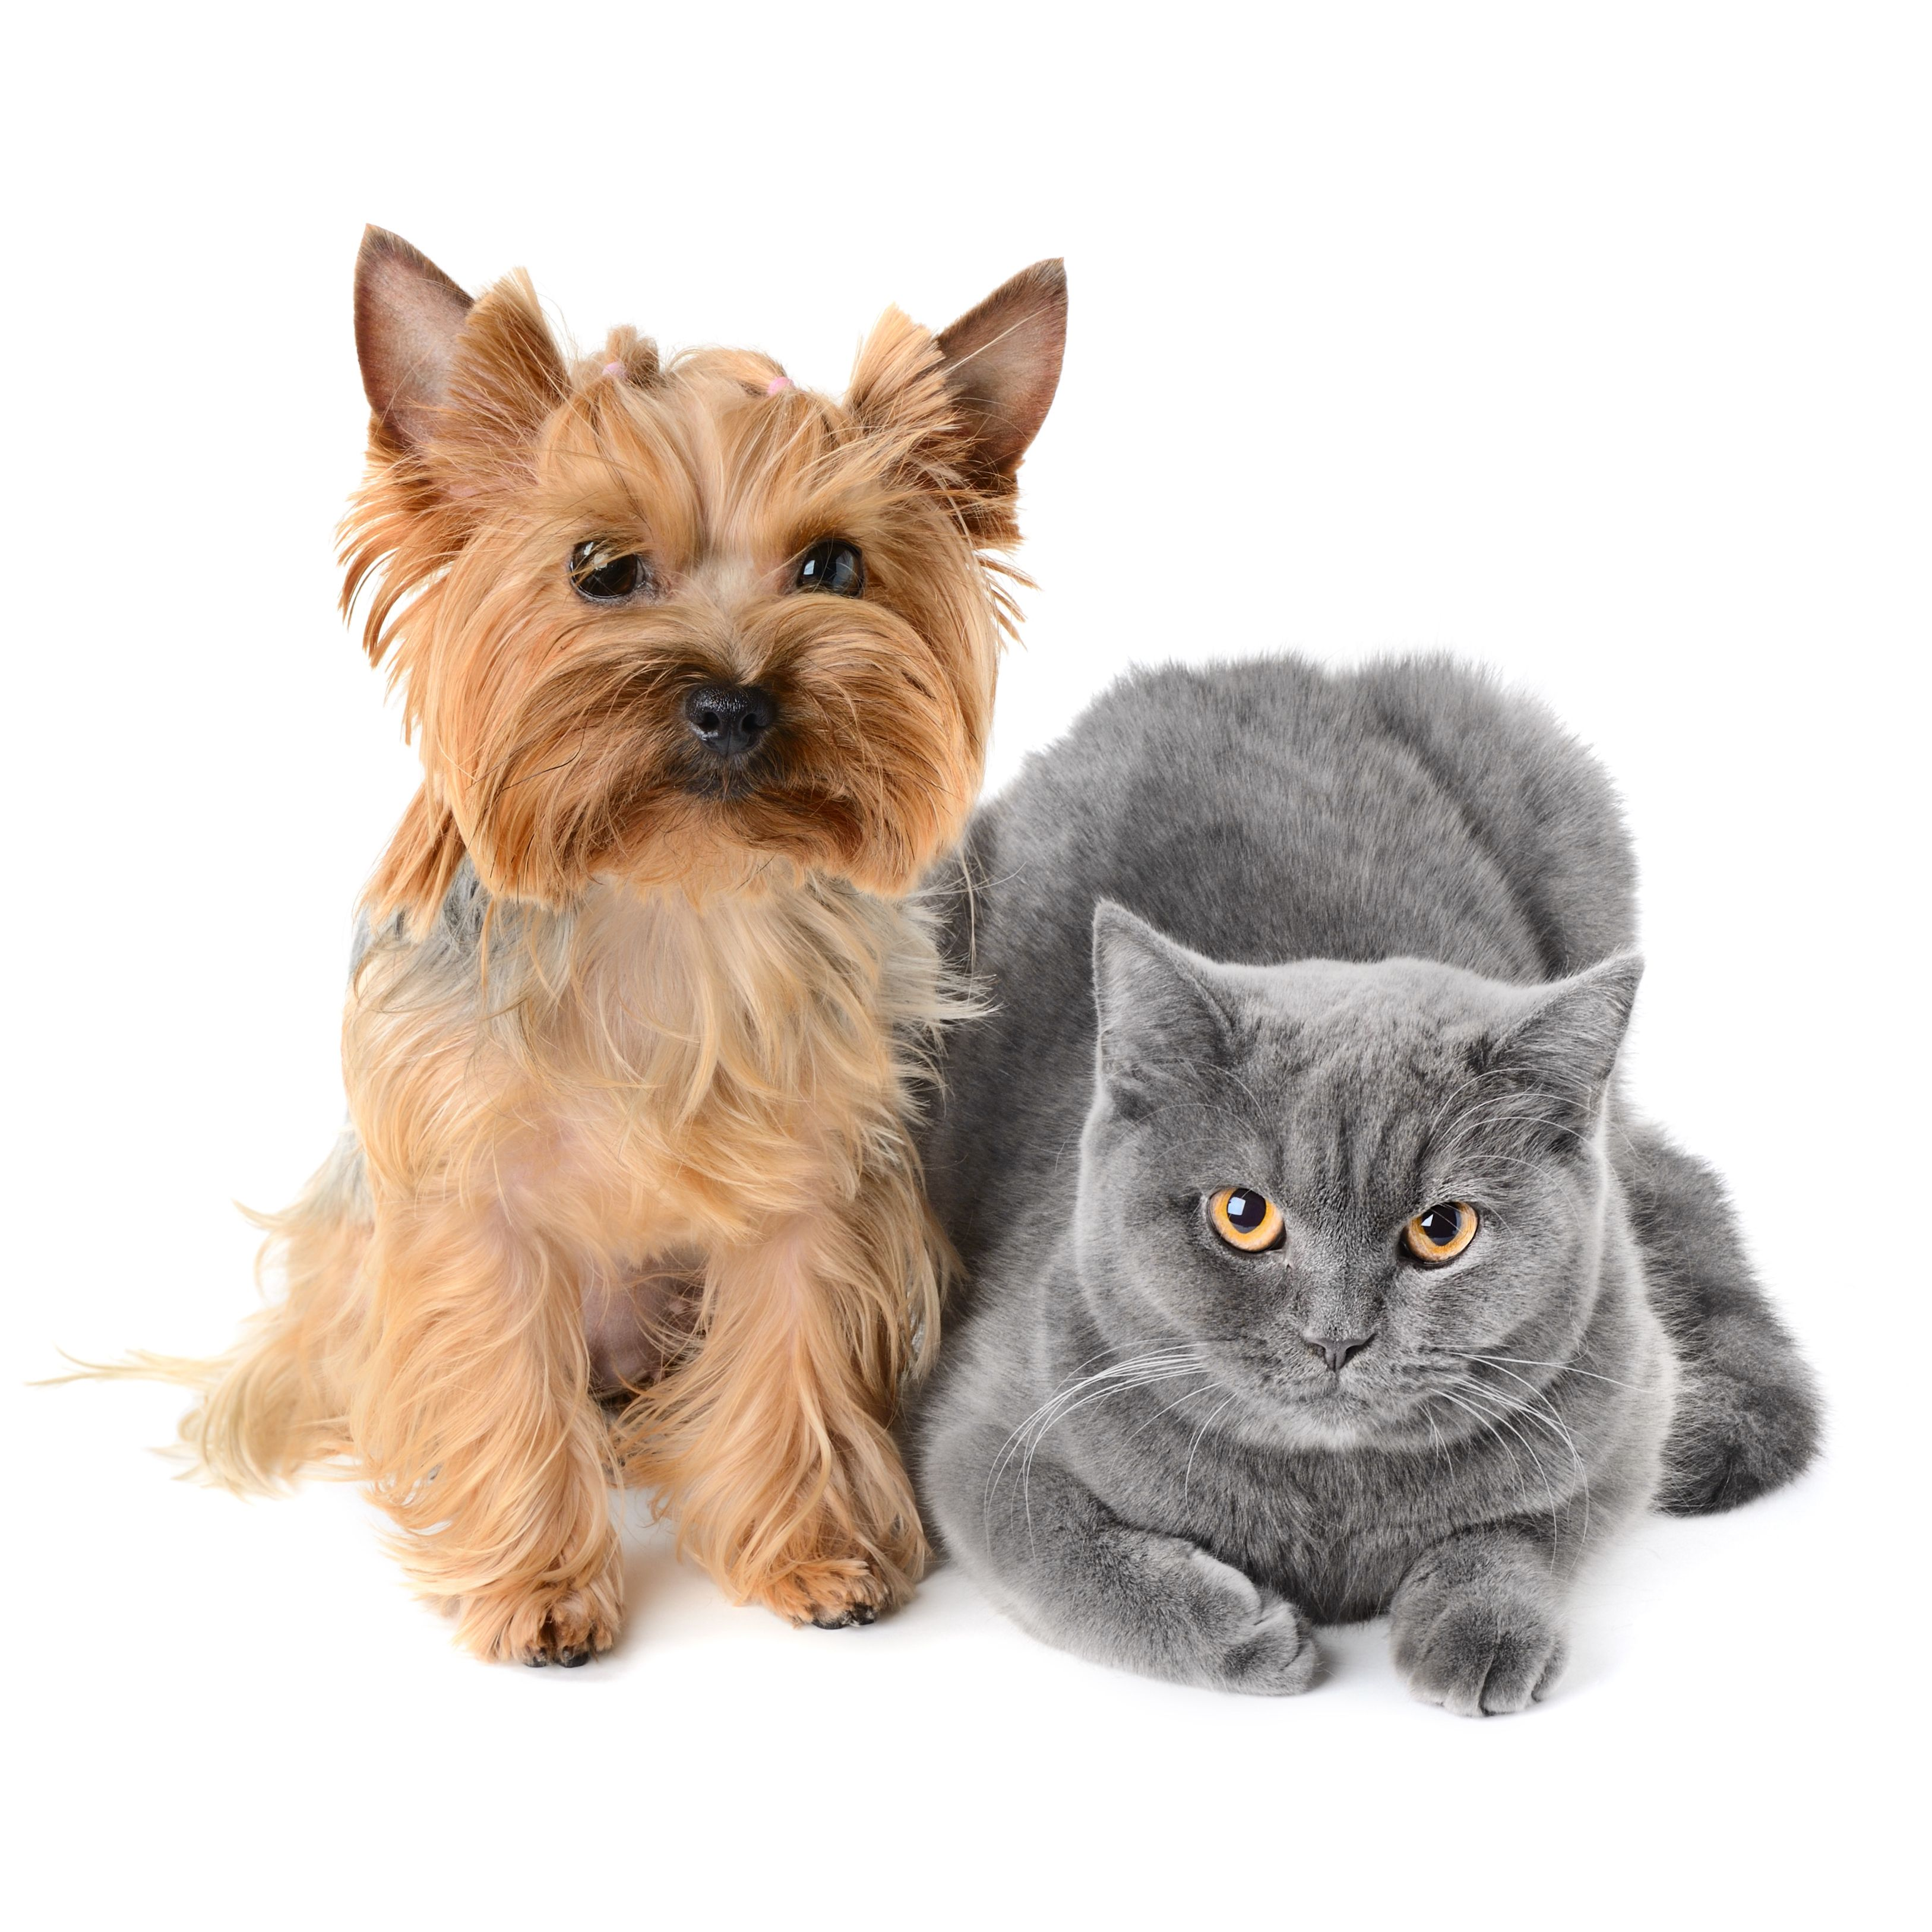 More than 50 of cats who develop pancreatitis have other